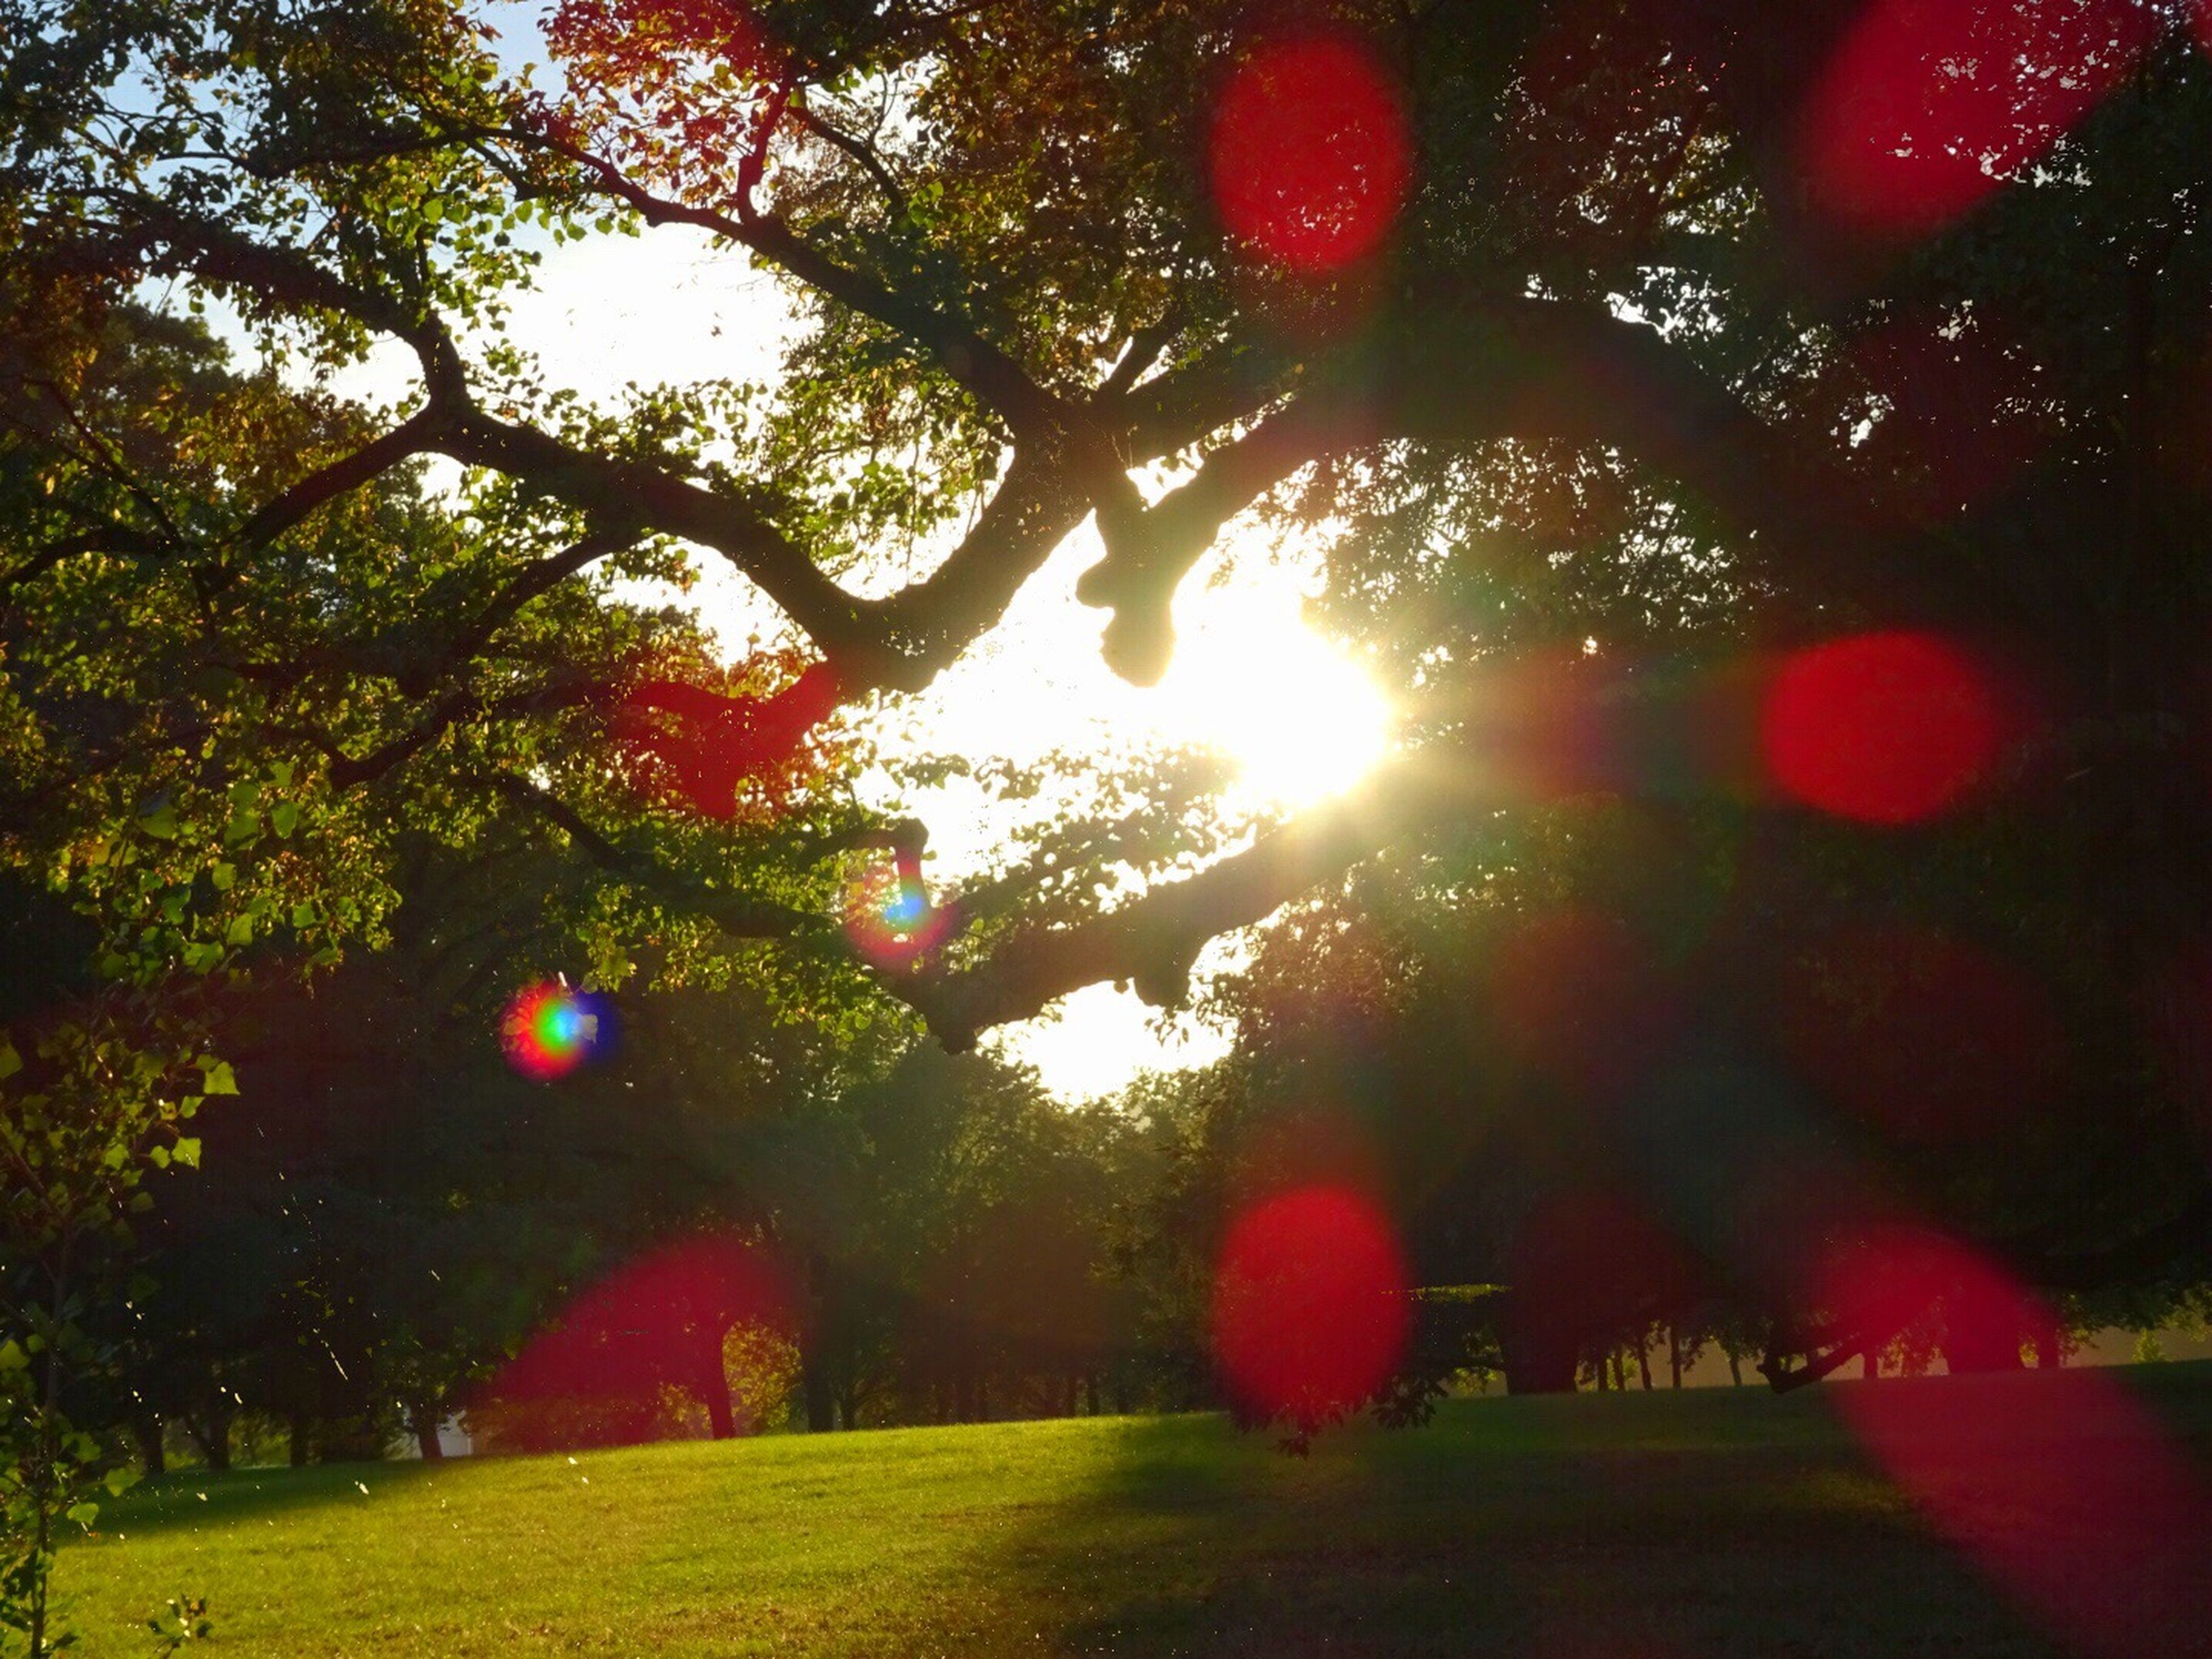 tree, sun, sunlight, lens flare, tranquil scene, growth, landscape, tranquility, park - man made space, branch, sunbeam, scenics, nature, beauty in nature, bright, glowing, green color, flower, day, non-urban scene, sunny, park, agriculture, freshness, sky, outdoors, red, back lit